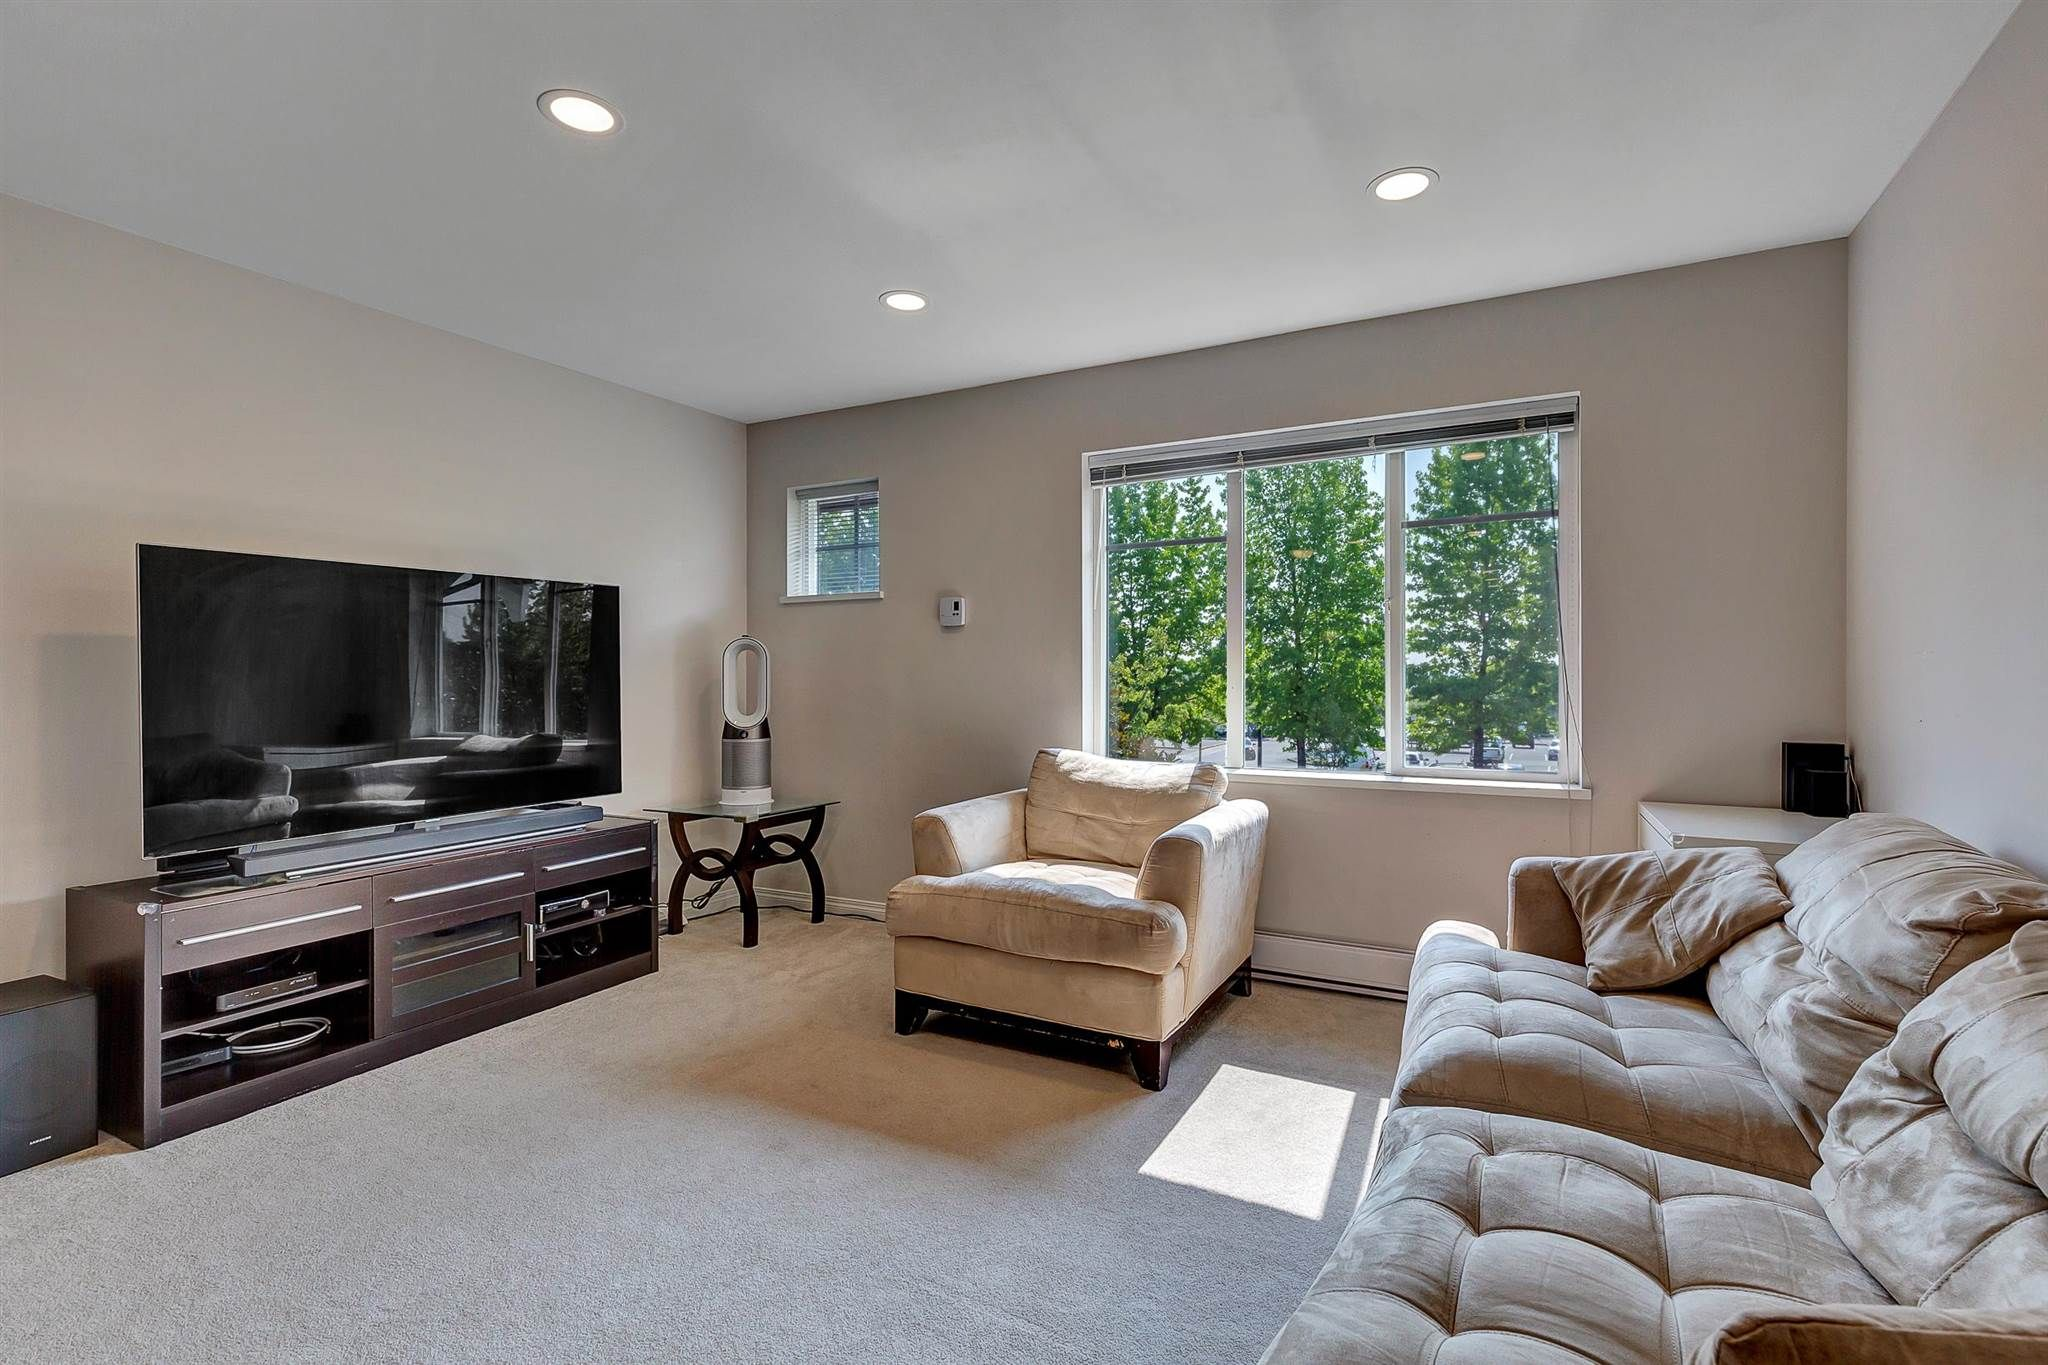 """Photo 6: Photos: 9 15871 85 Avenue in Surrey: Fleetwood Tynehead Townhouse for sale in """"Huckleberry"""" : MLS®# R2606668"""